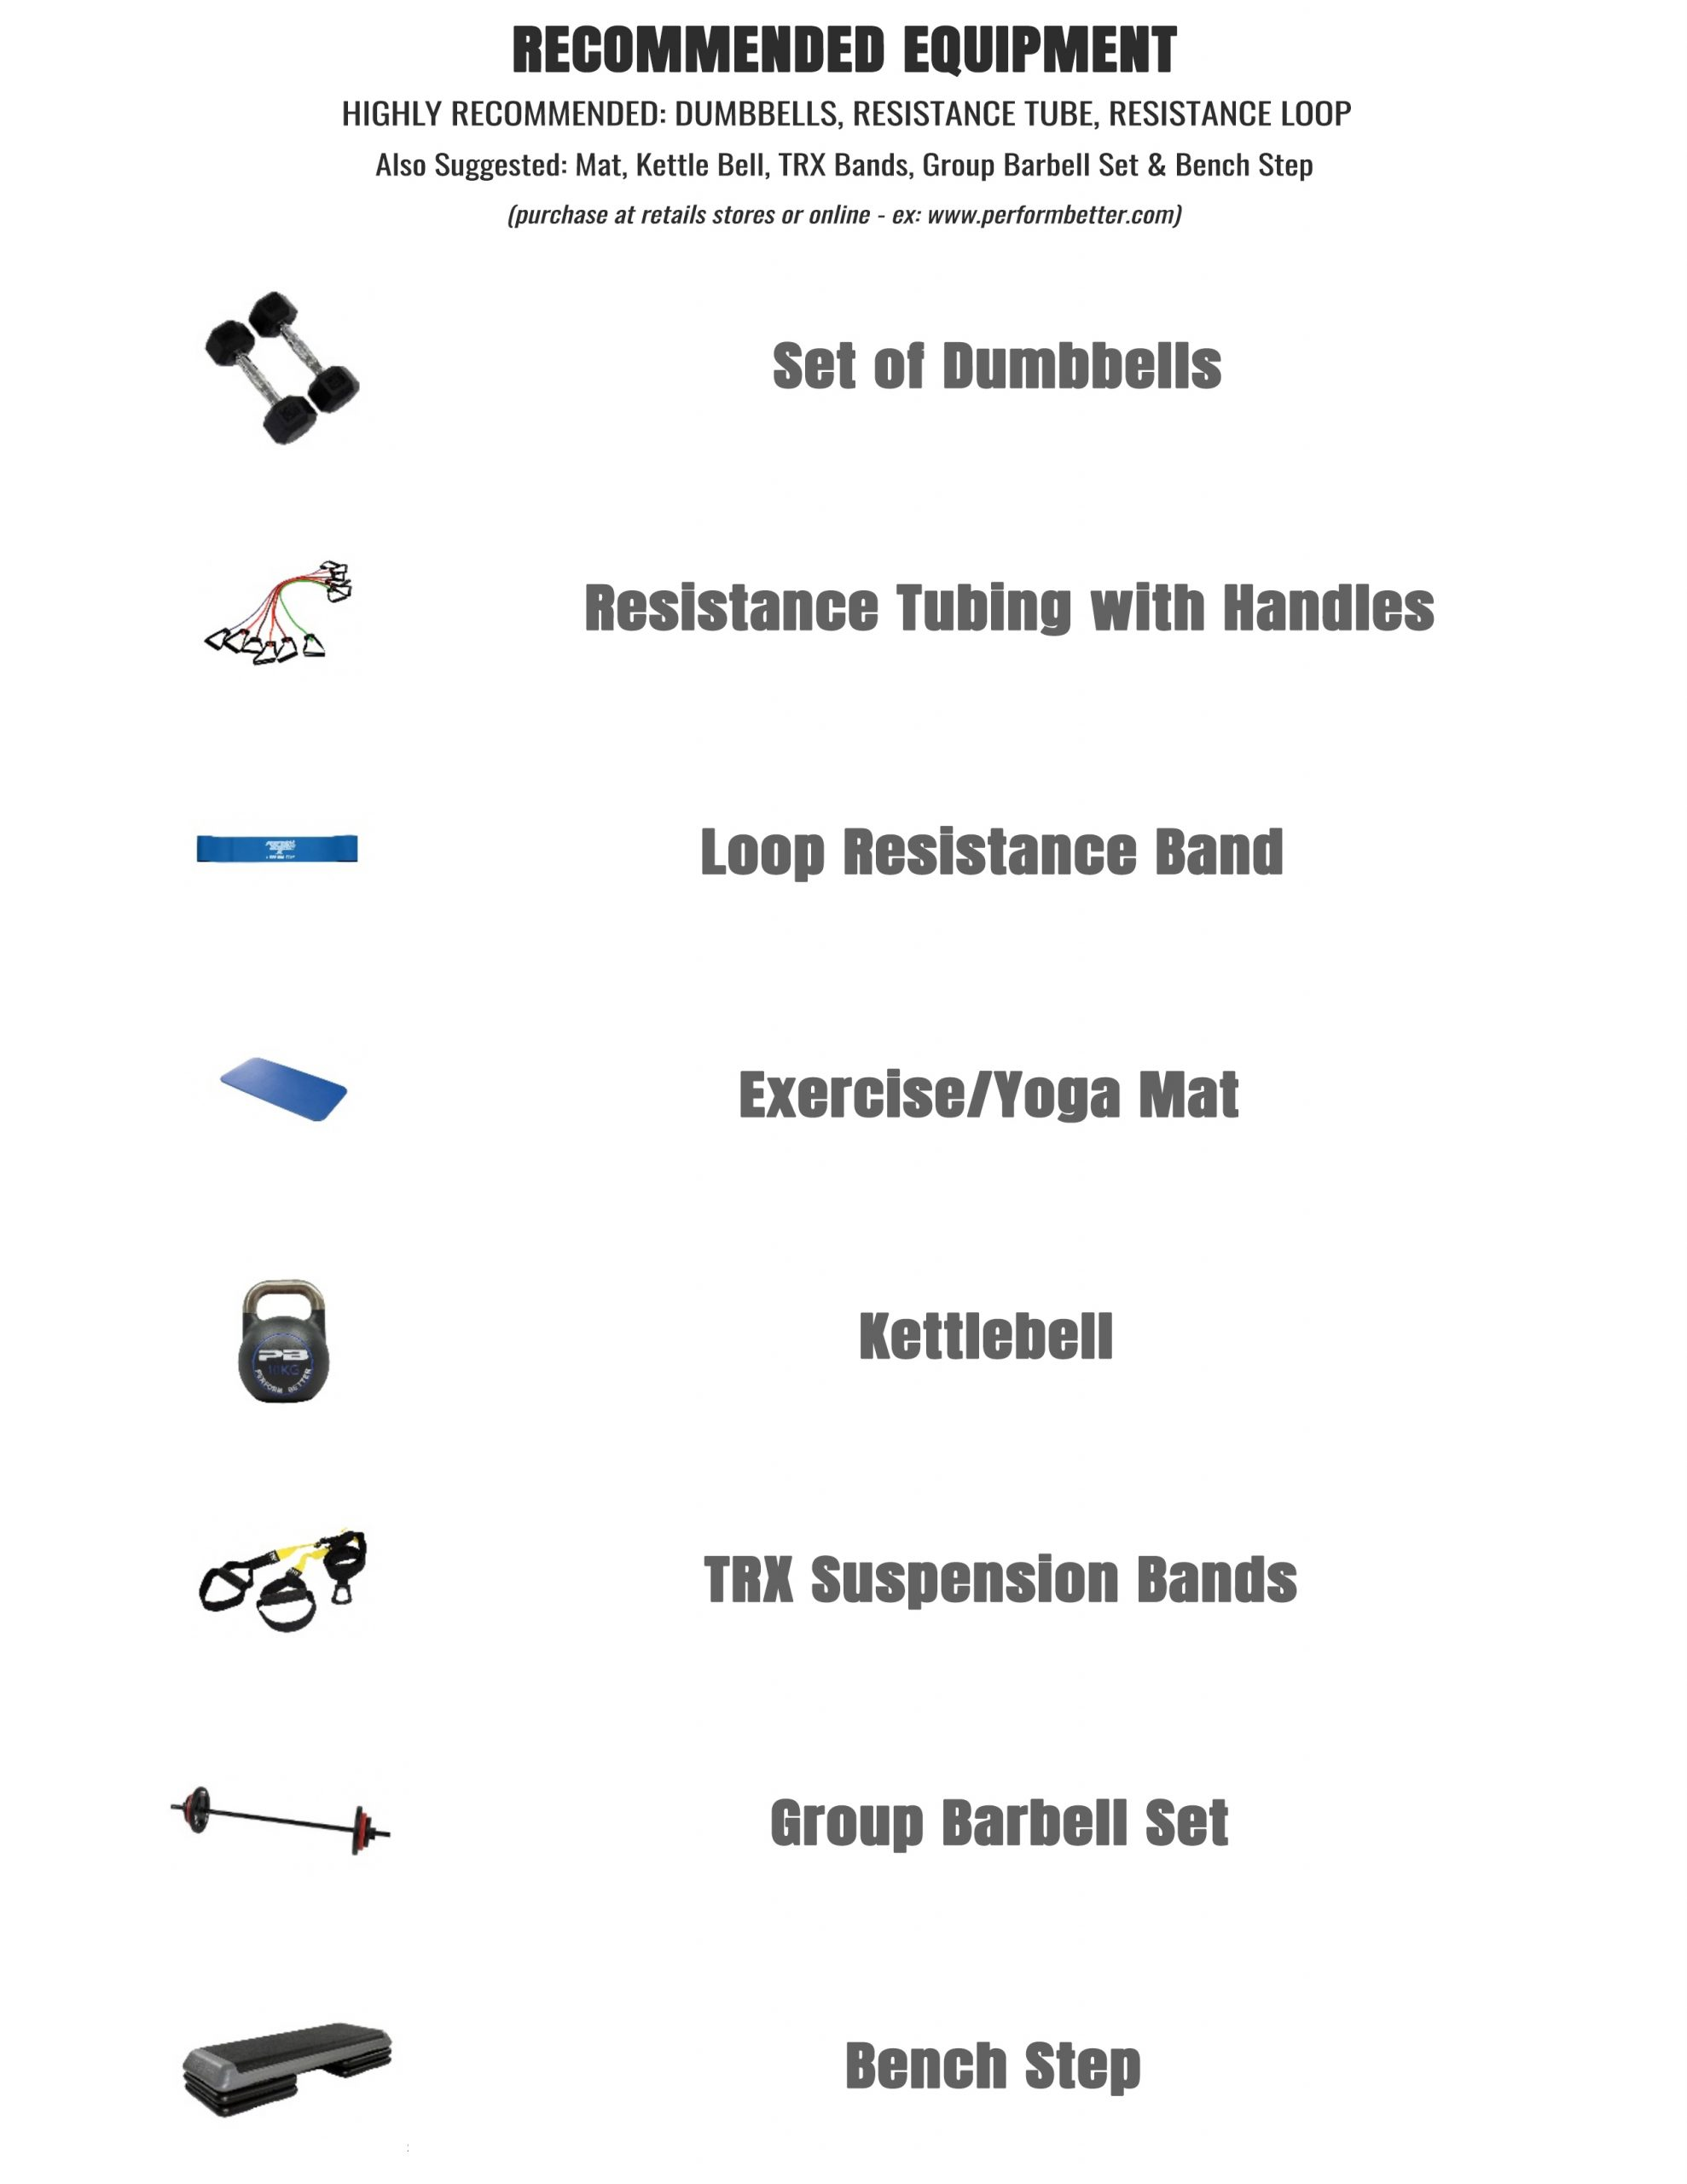 Home Workout Recommended Equipment